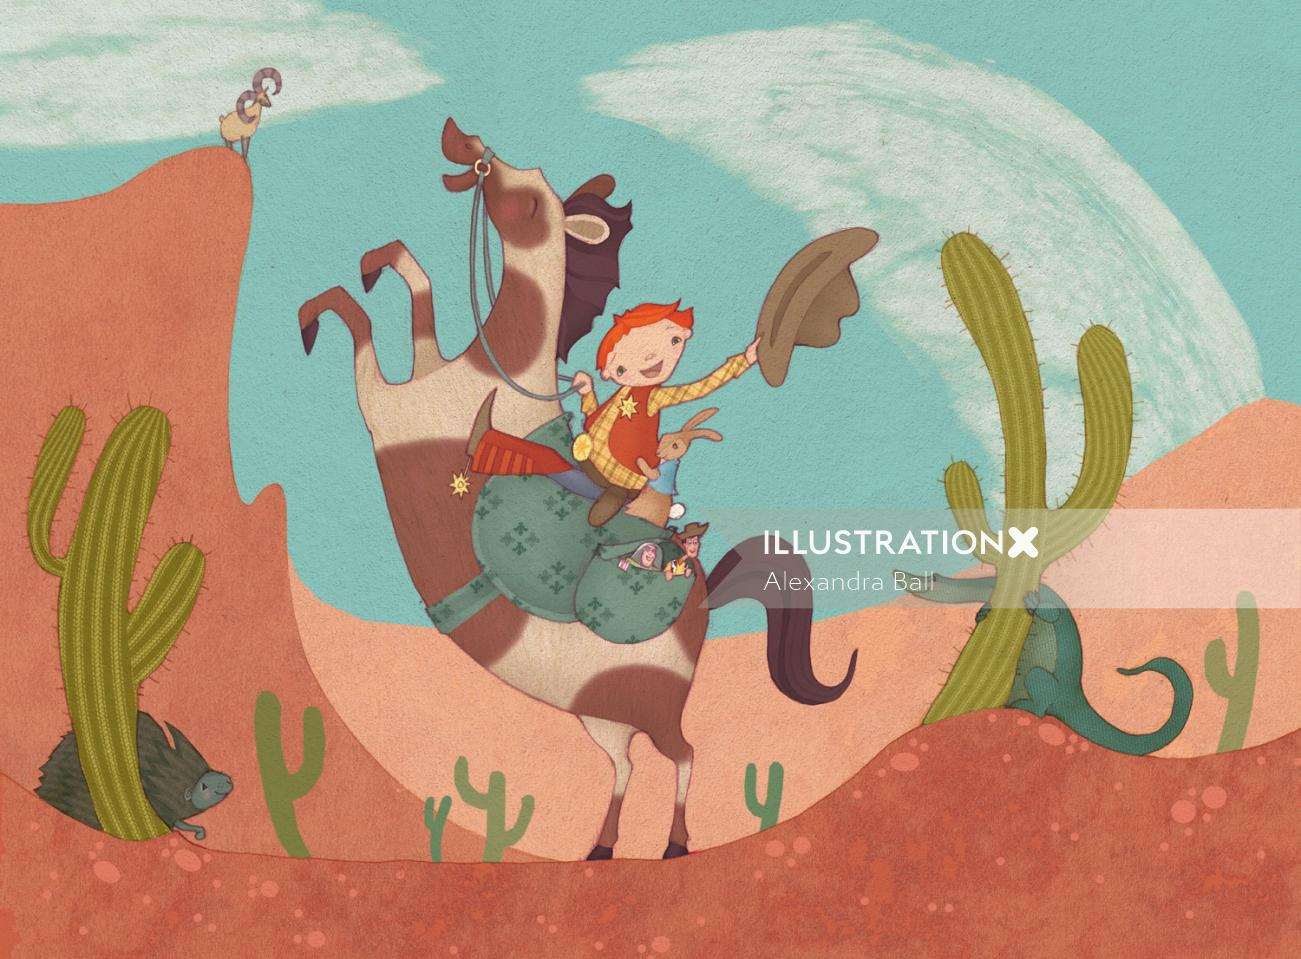 child cowboy on horse rearing up with toys in bag